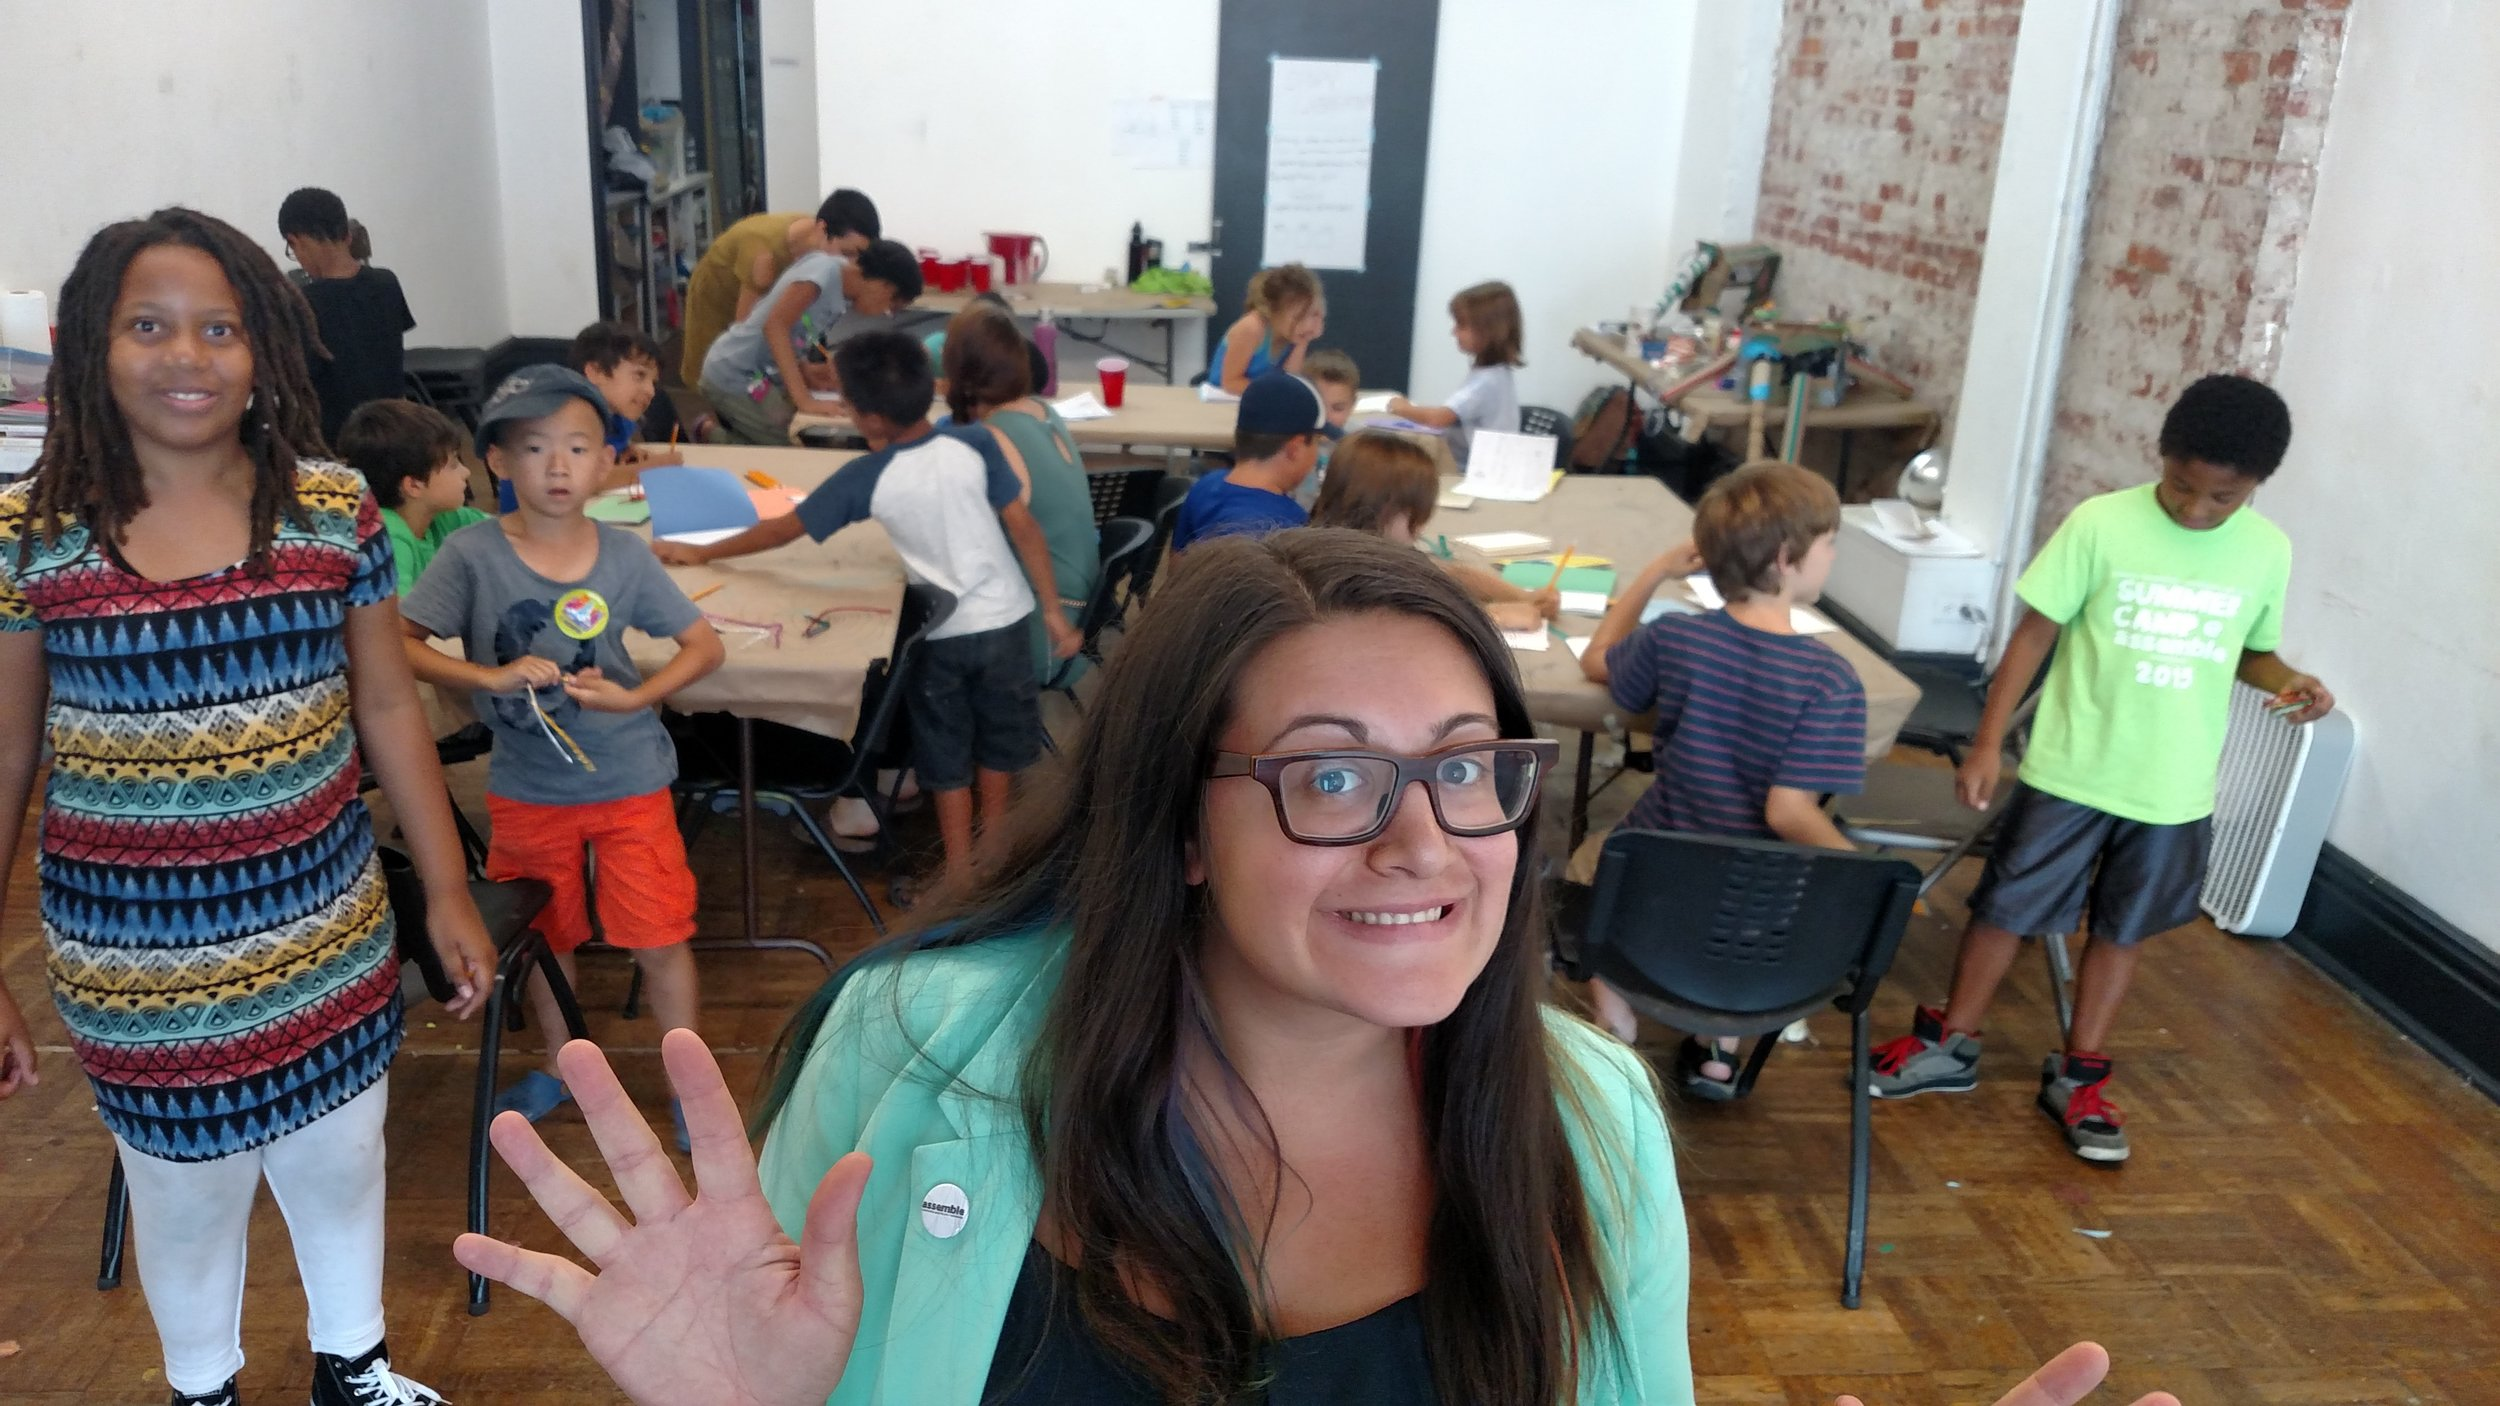 Nina Barbuto, founder of Assemble, pictured in her brick and mortar community space in Pittsburgh's Garfield neighborhood.